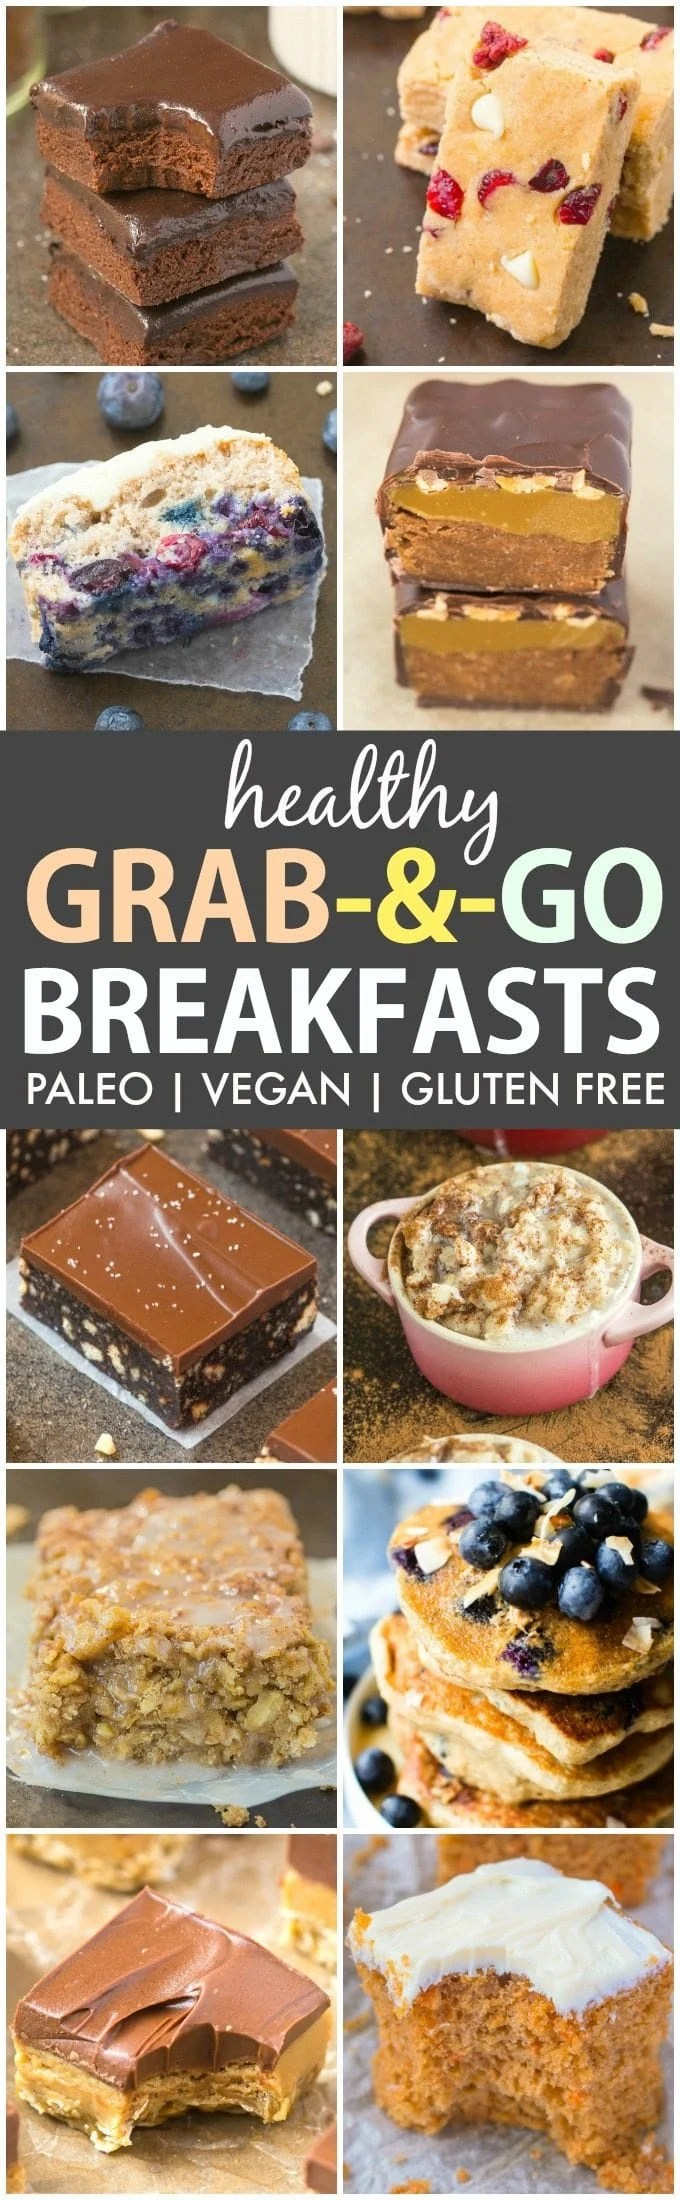 Easy and Healthy Grab and Go Breakfast Ideas (Paleo, Vegan, Gluten Free)- Over 25 Quick meal prep breakfast recipes which can be prepped in advance for busy mornings- Freezer friendly, portable and perfect to keep you satisfied all morning! {sugar free, dairy free, nut free, peanut free recipe}- thebigmansworld.com